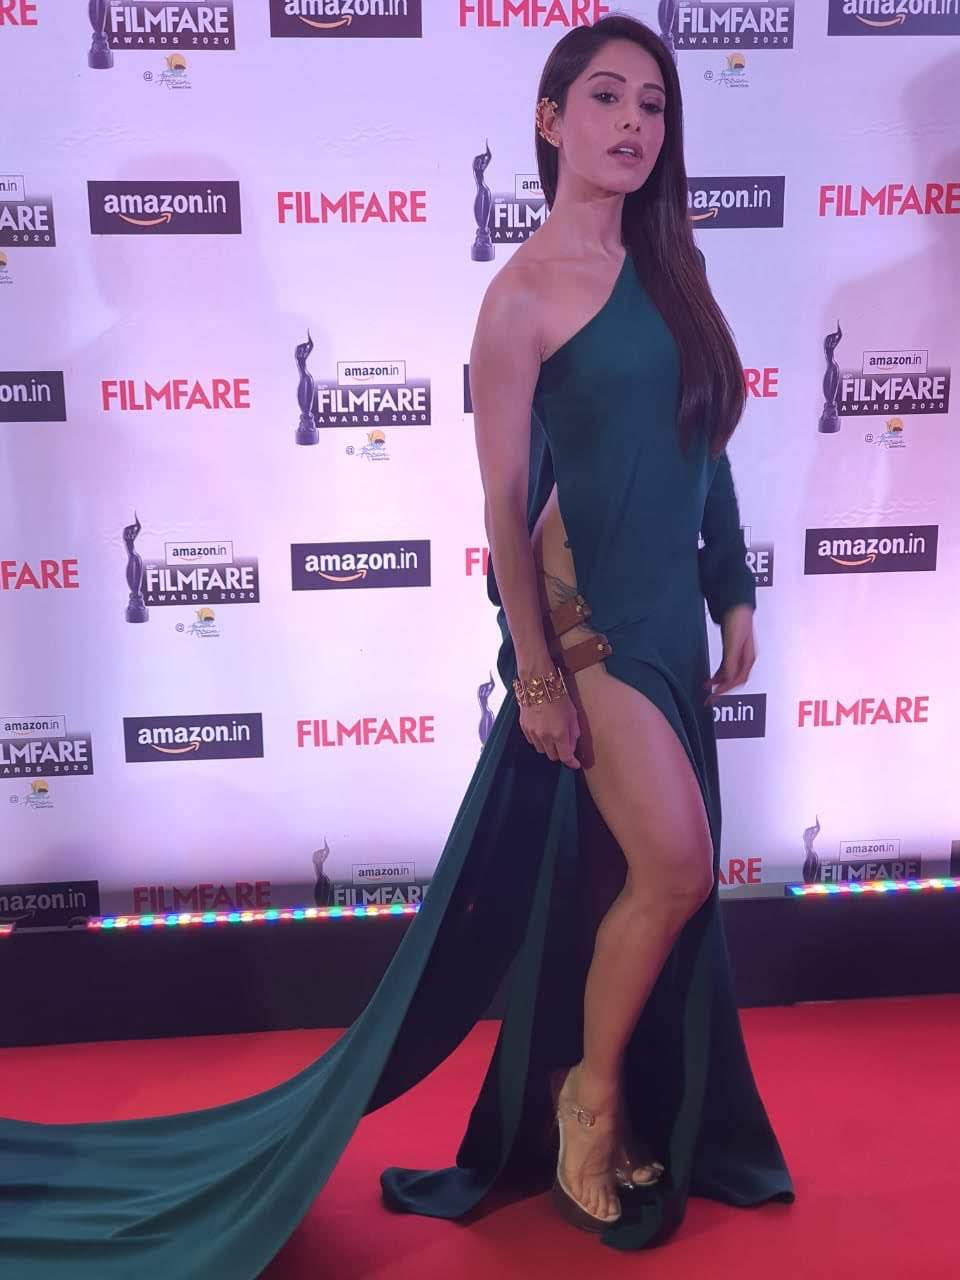 filmfare-awards-2020-37